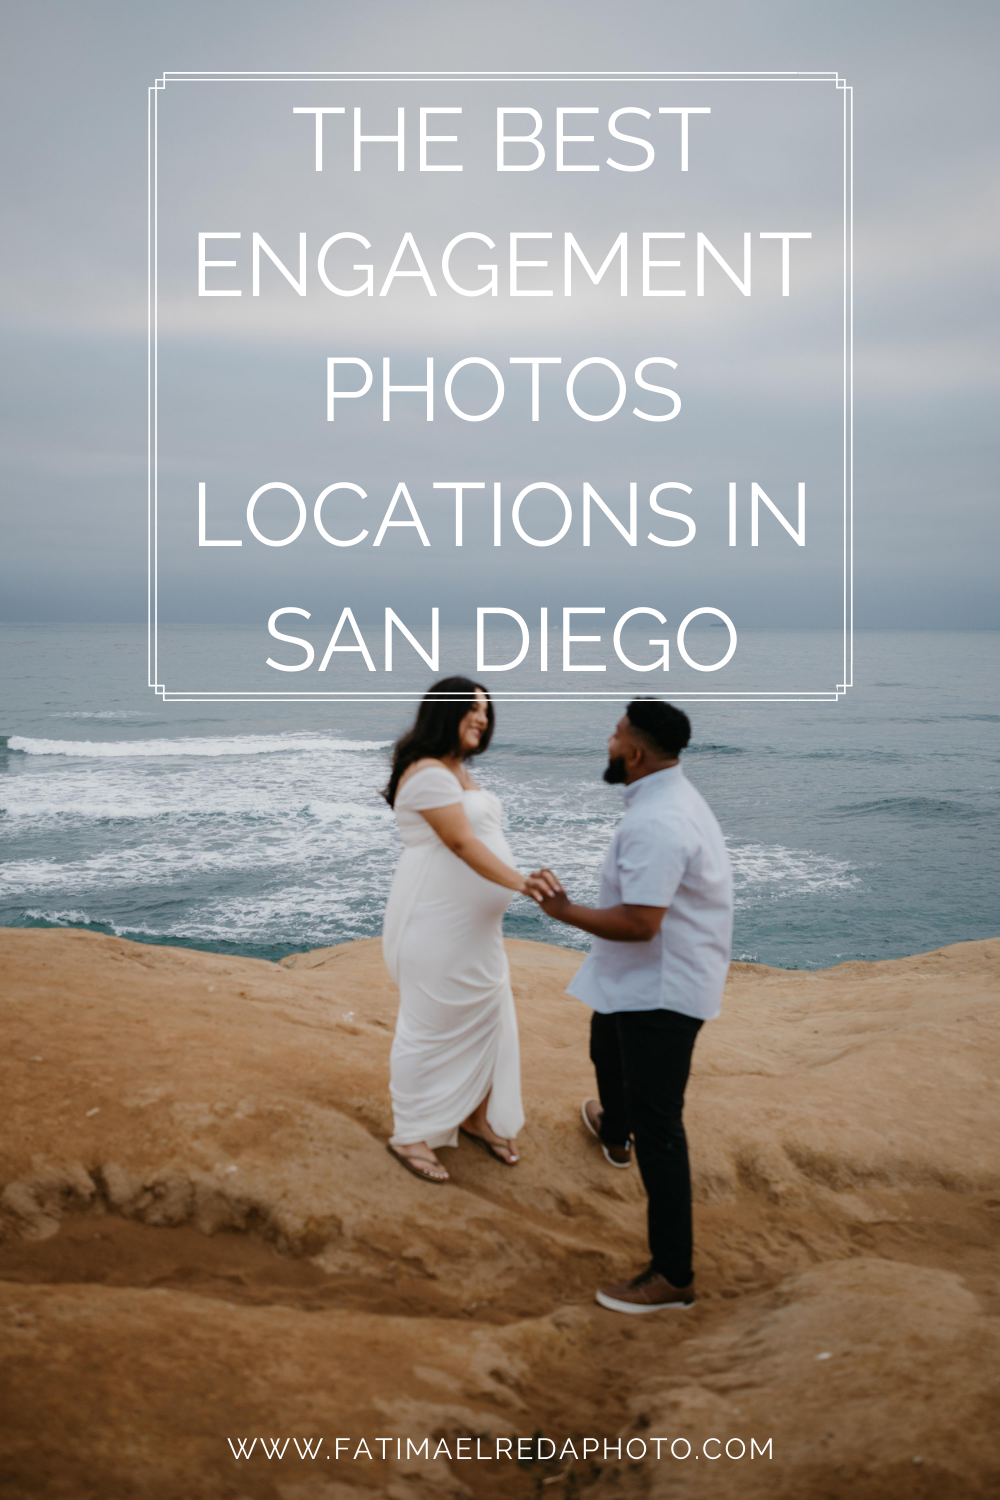 The Best Engagement Photos Locations in San Diego, image by Fatima Elreda Photo